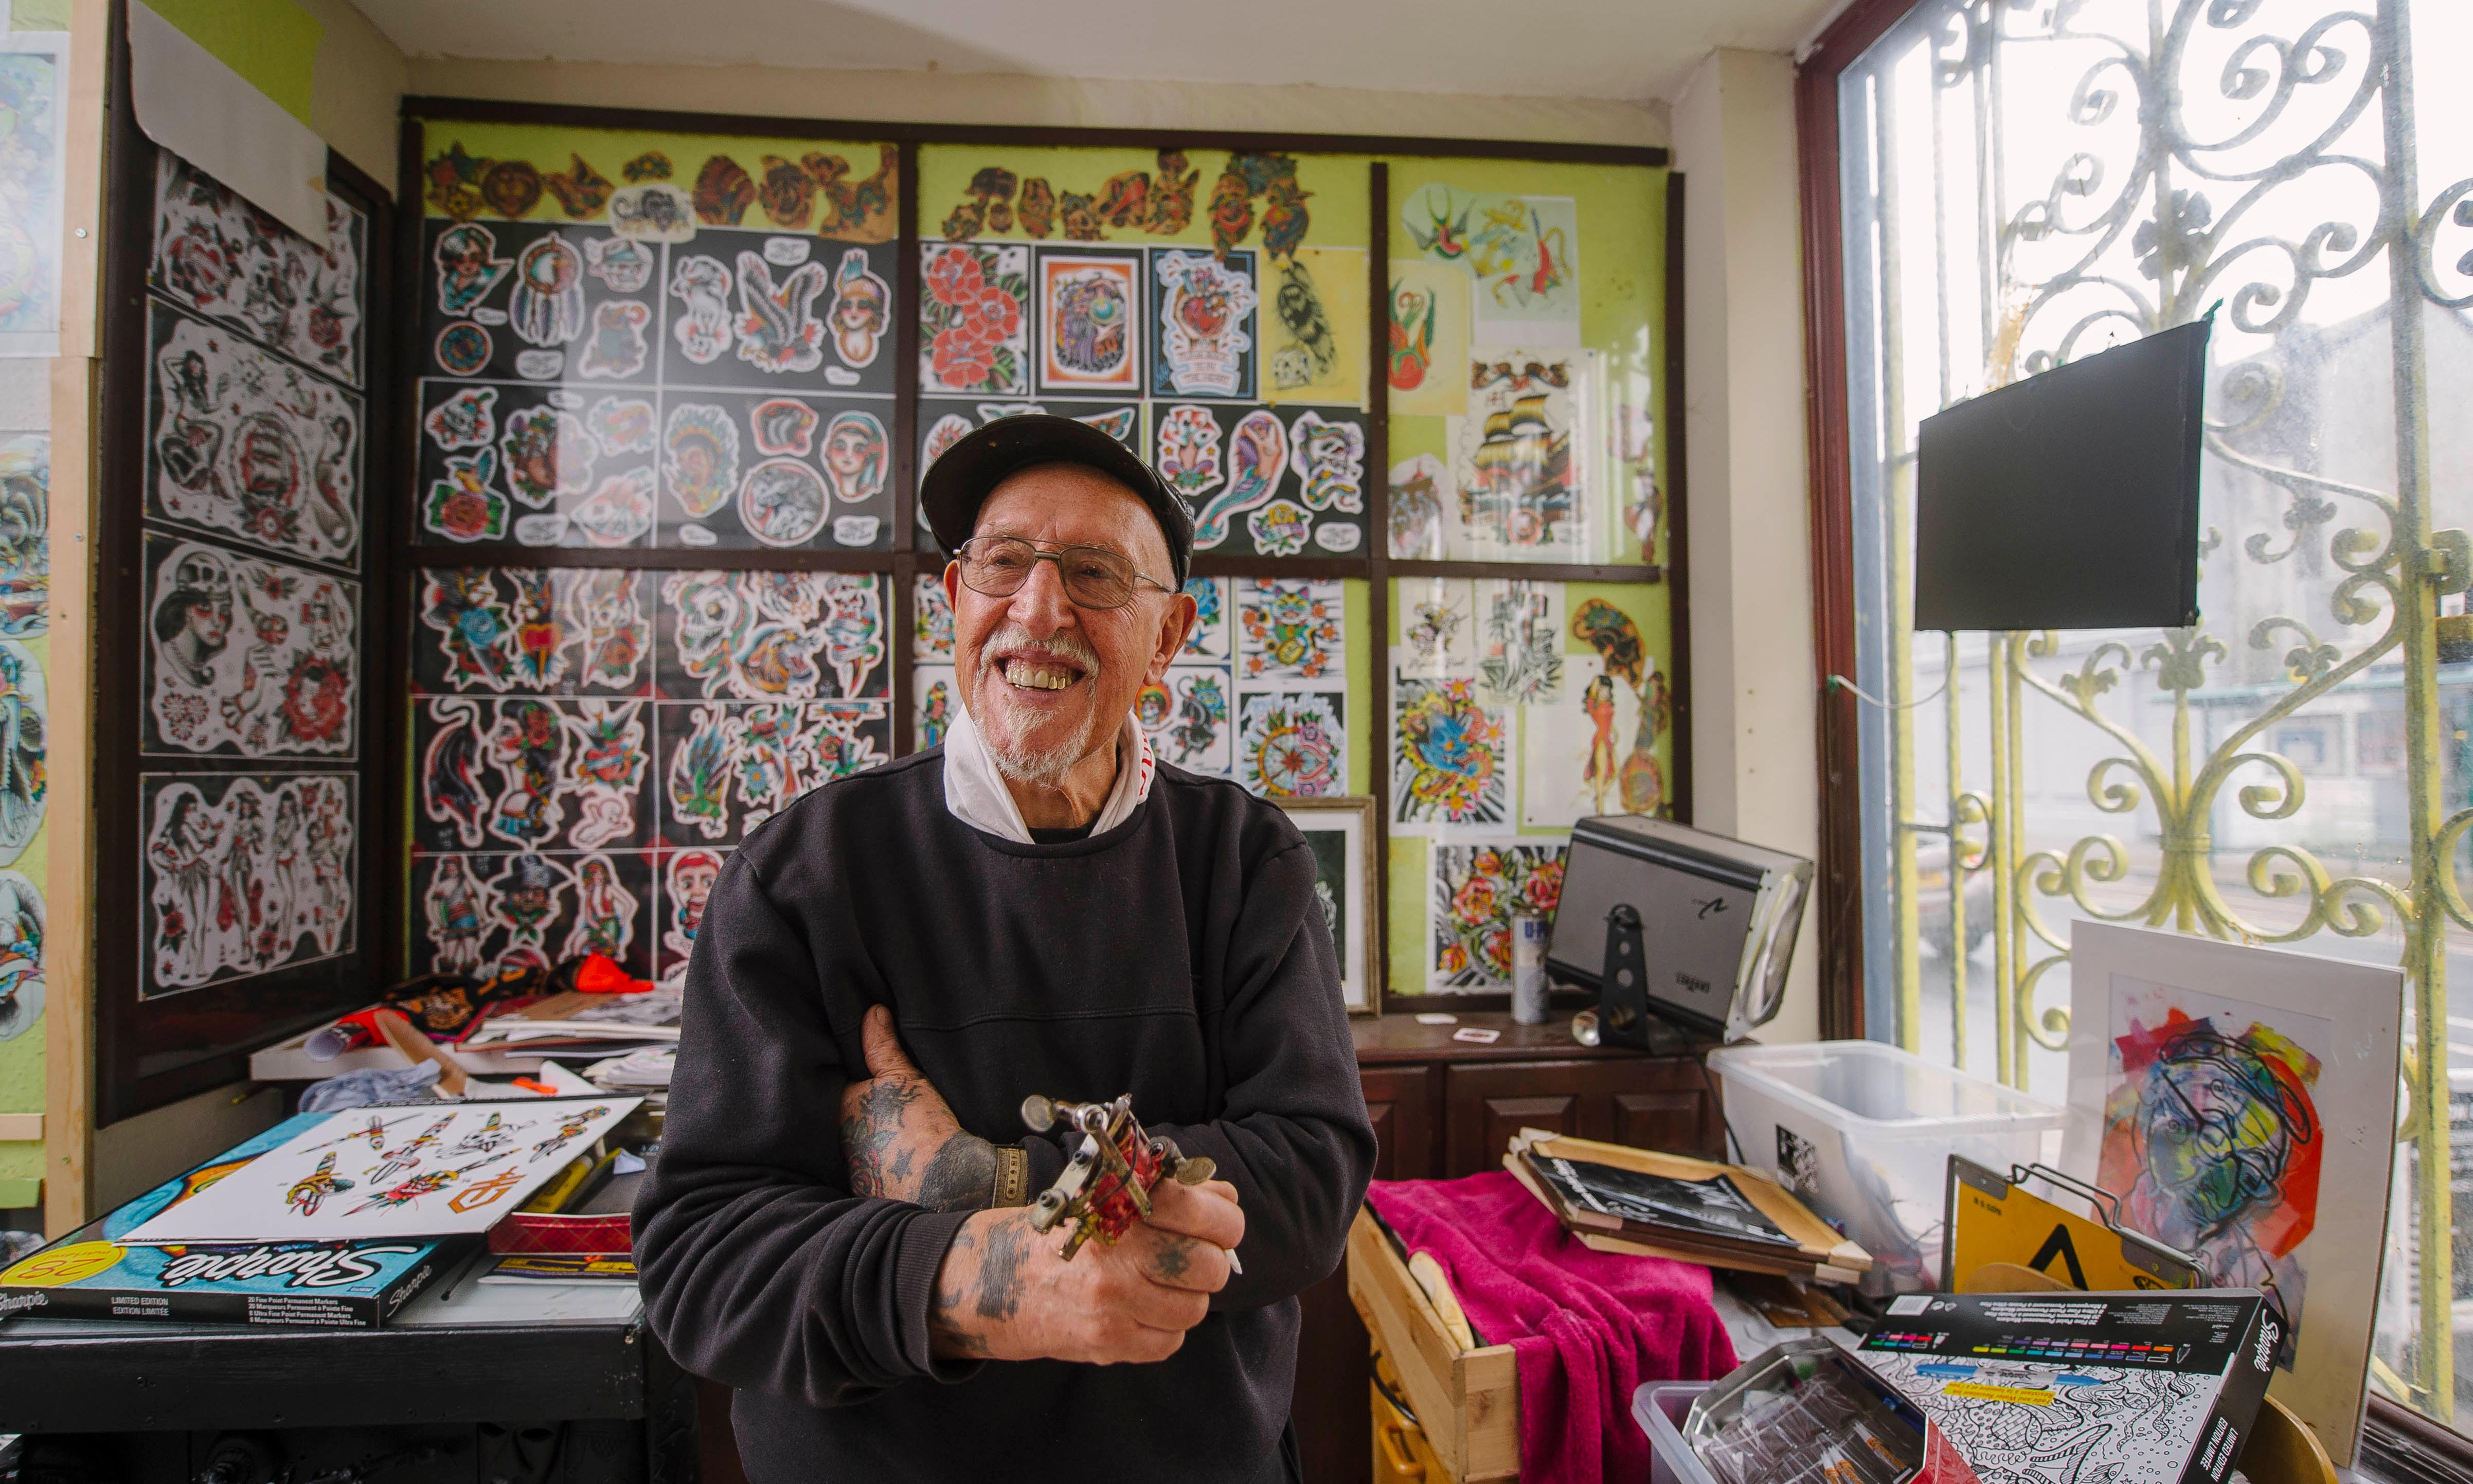 Britain's oldest tattooist: 'I've covered around 28 acres of skin'